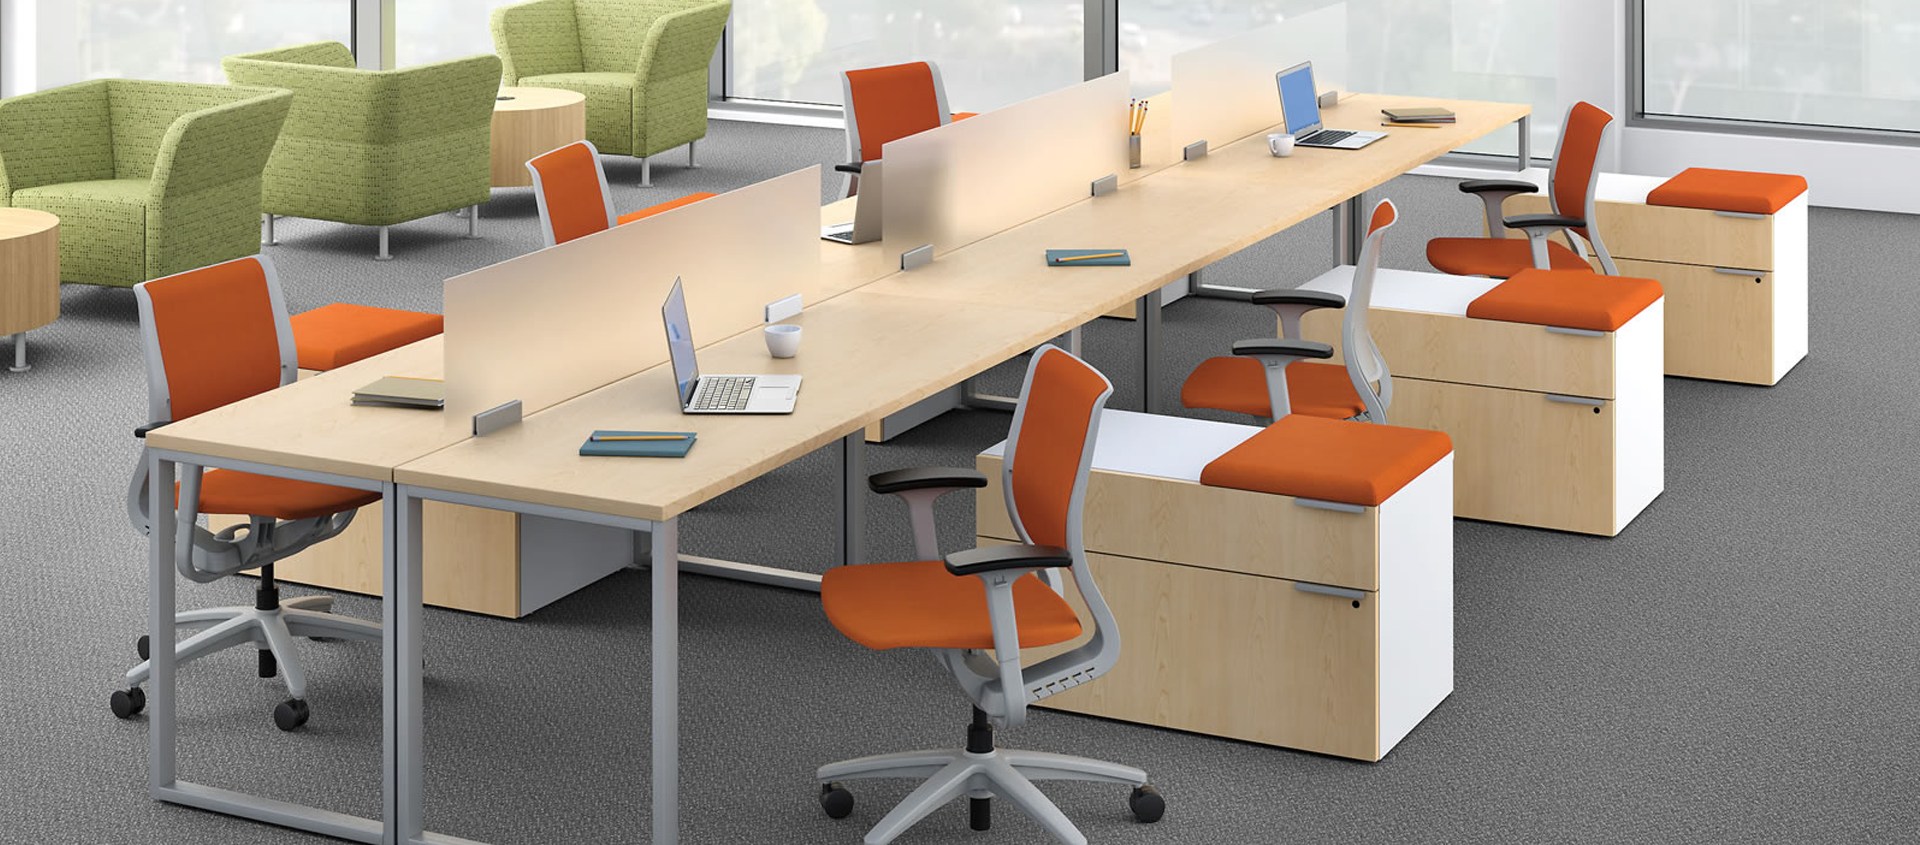 Office-furniture-in-new-york